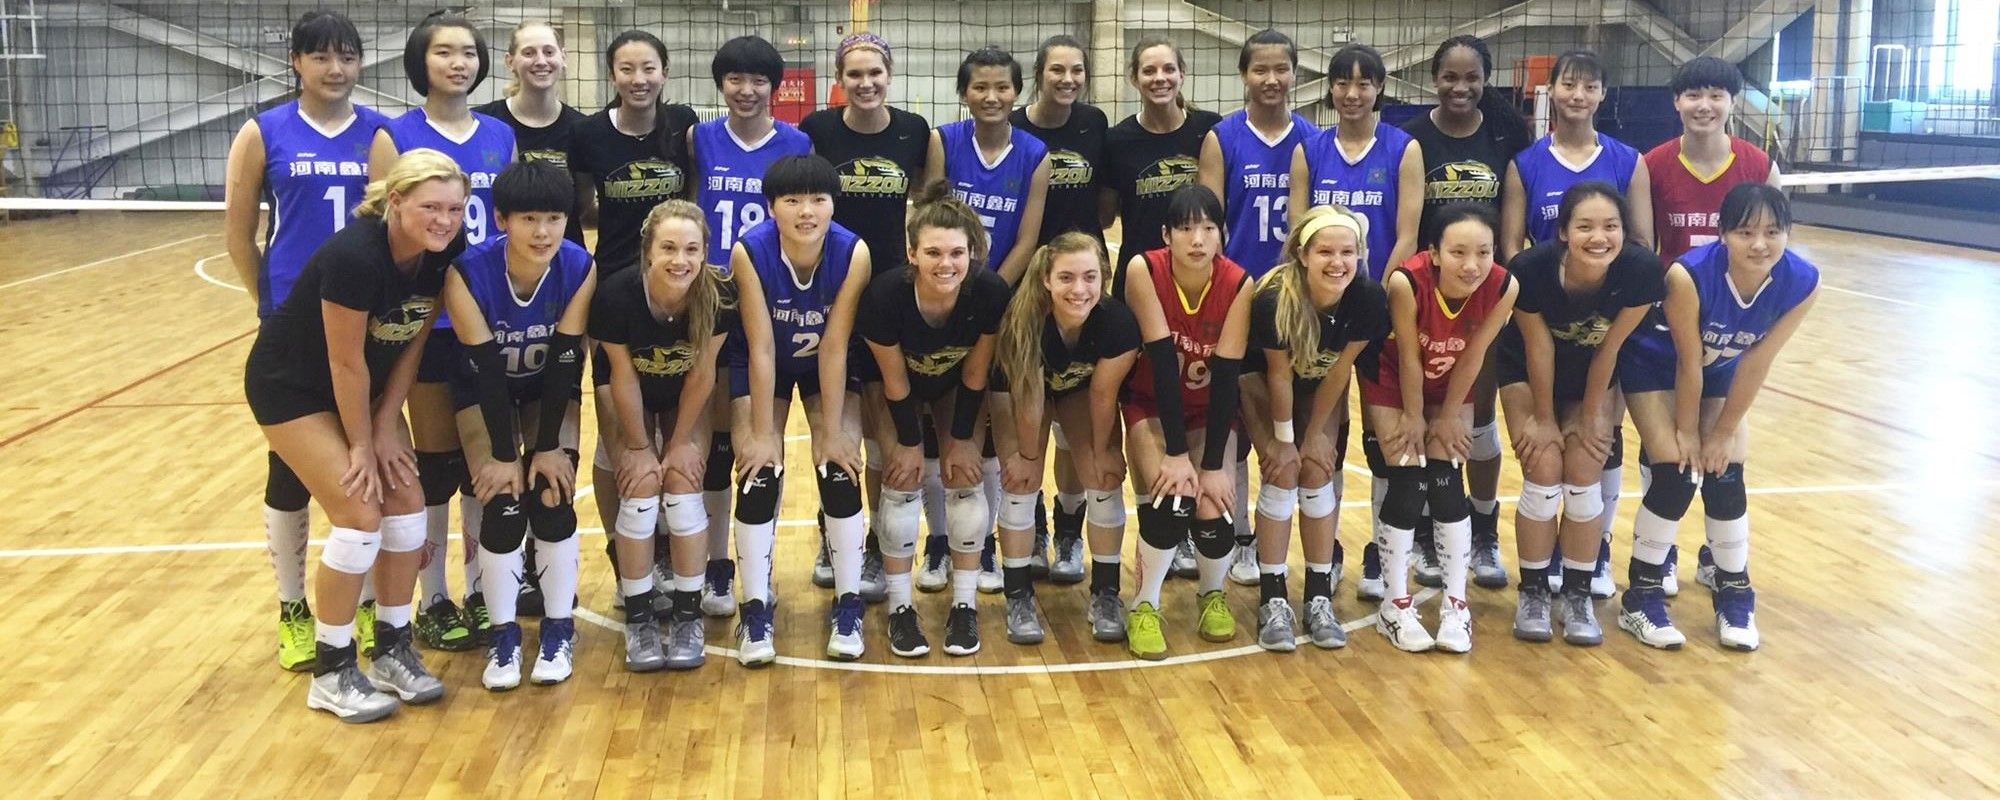 China Trip Flashback Julia Towler Volleyball News Volleyball Julia